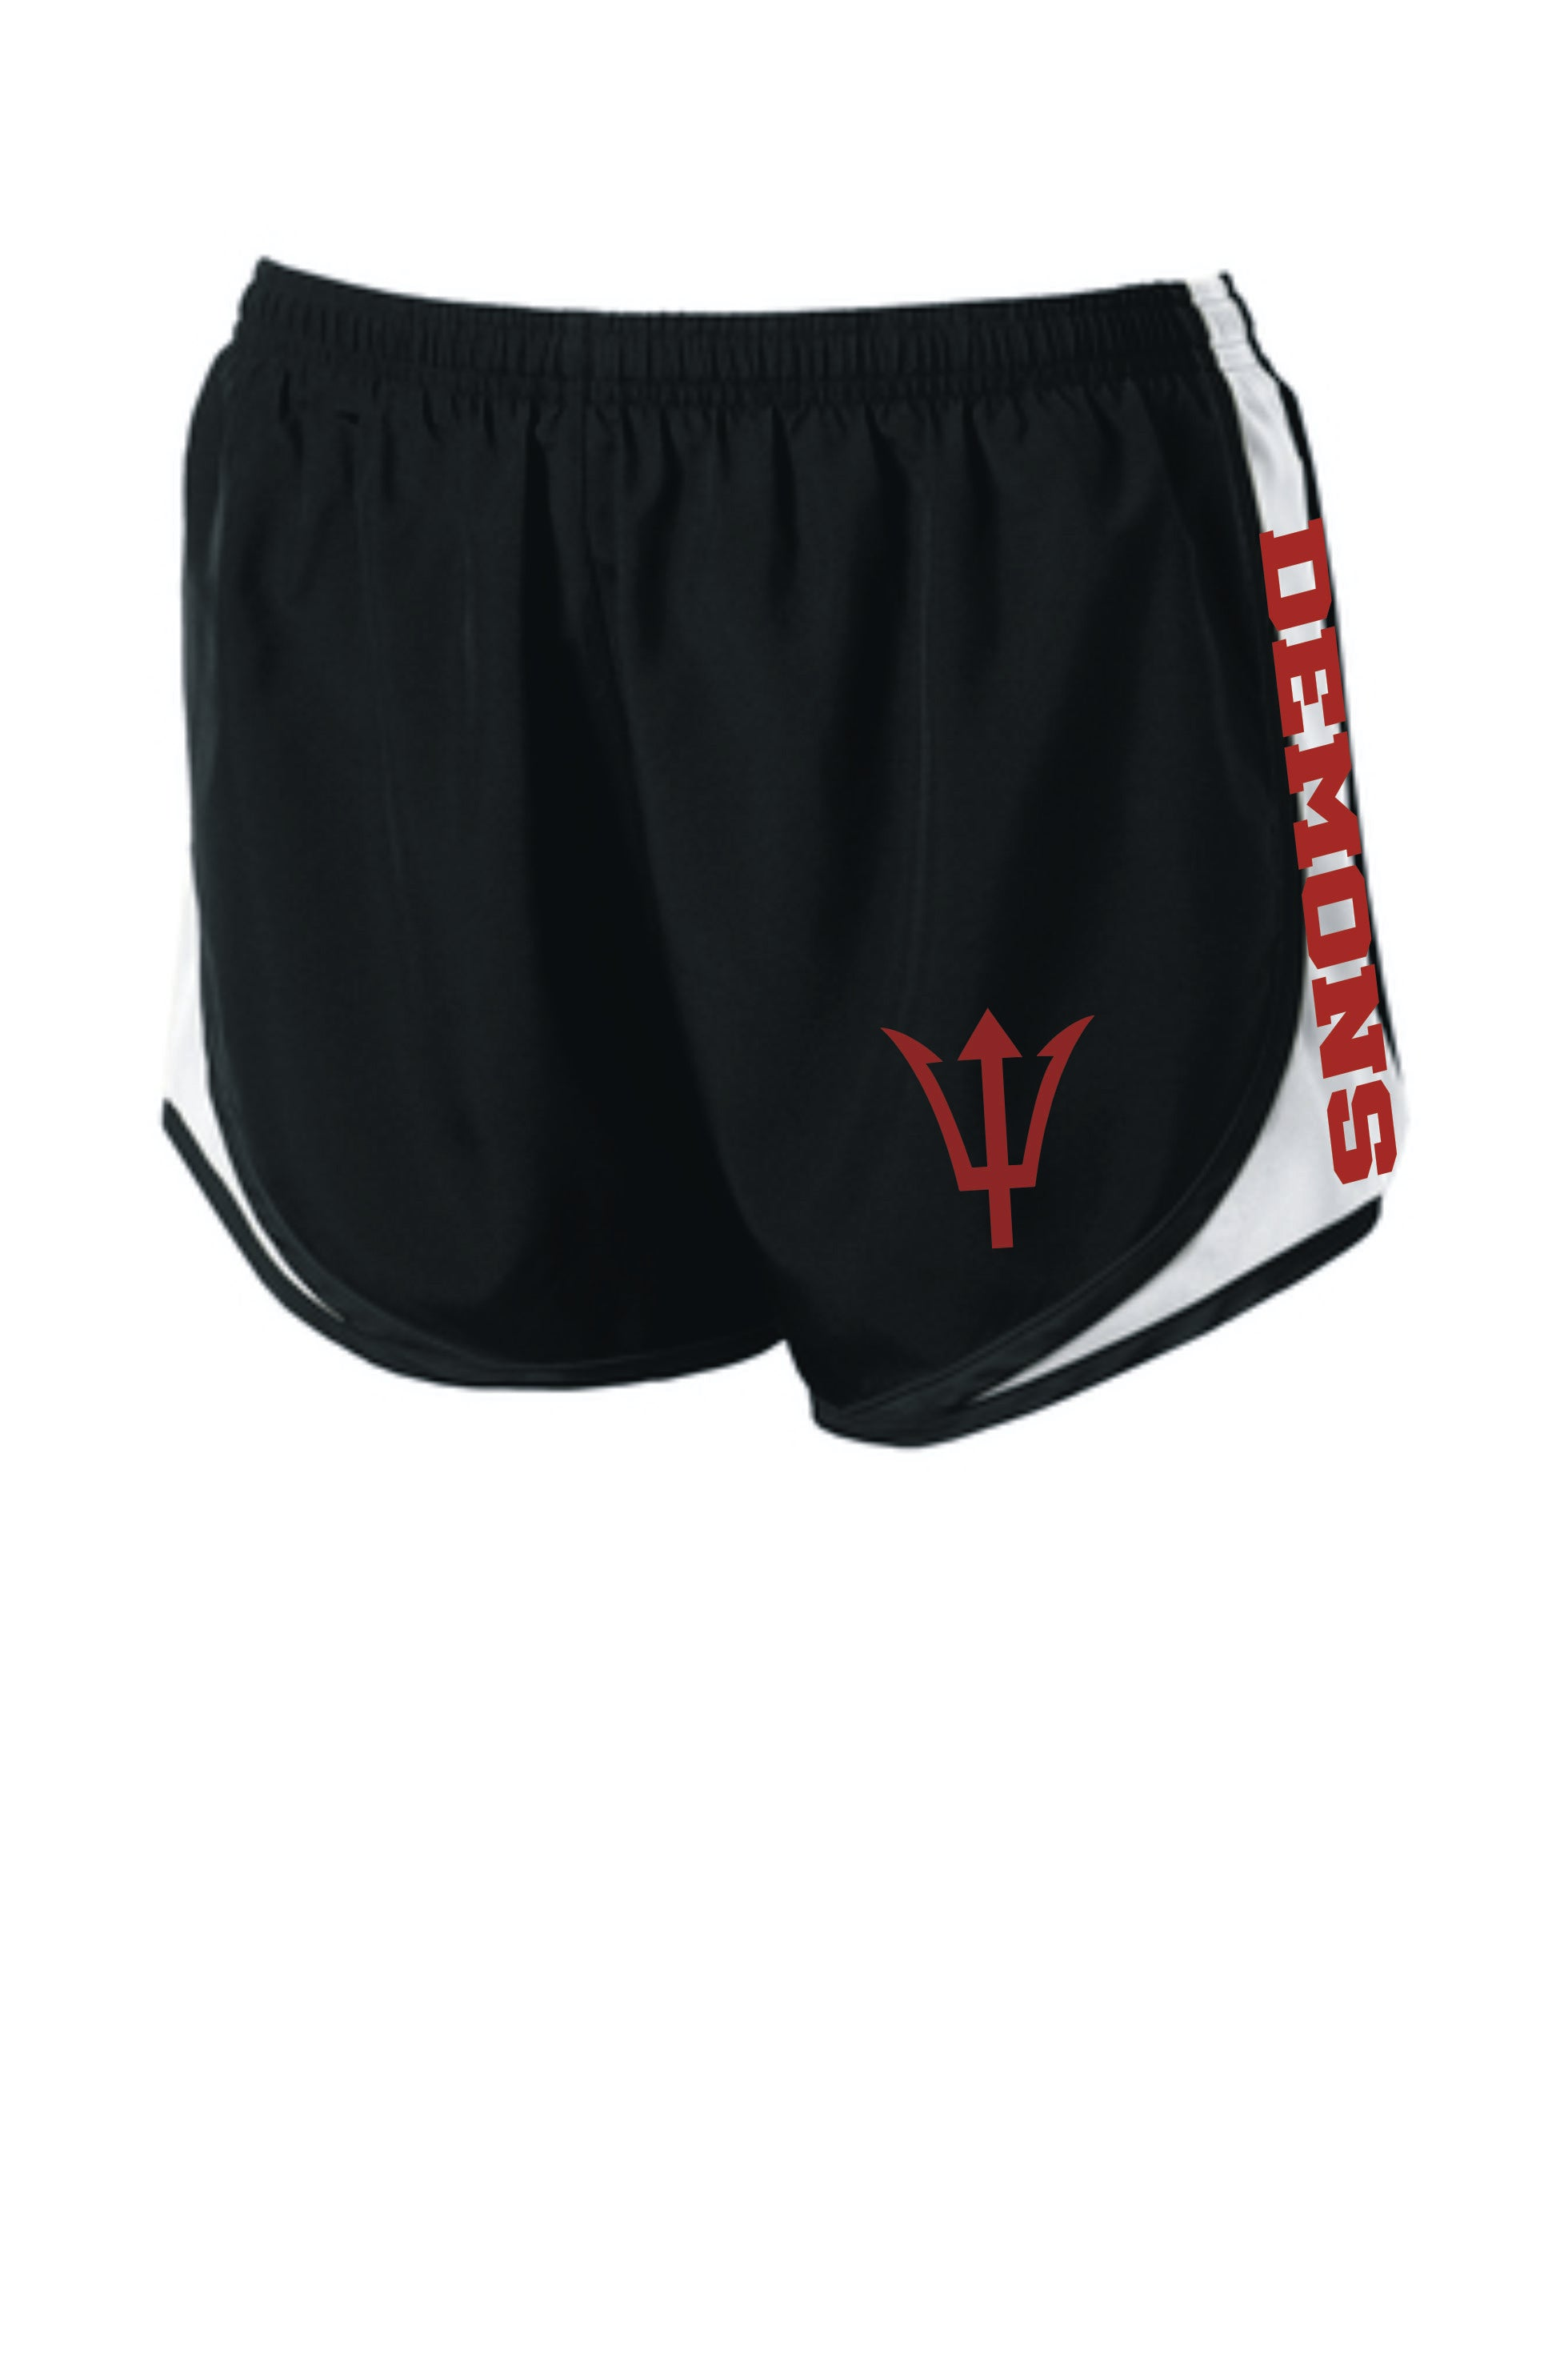 running shorts, warner robins soccer